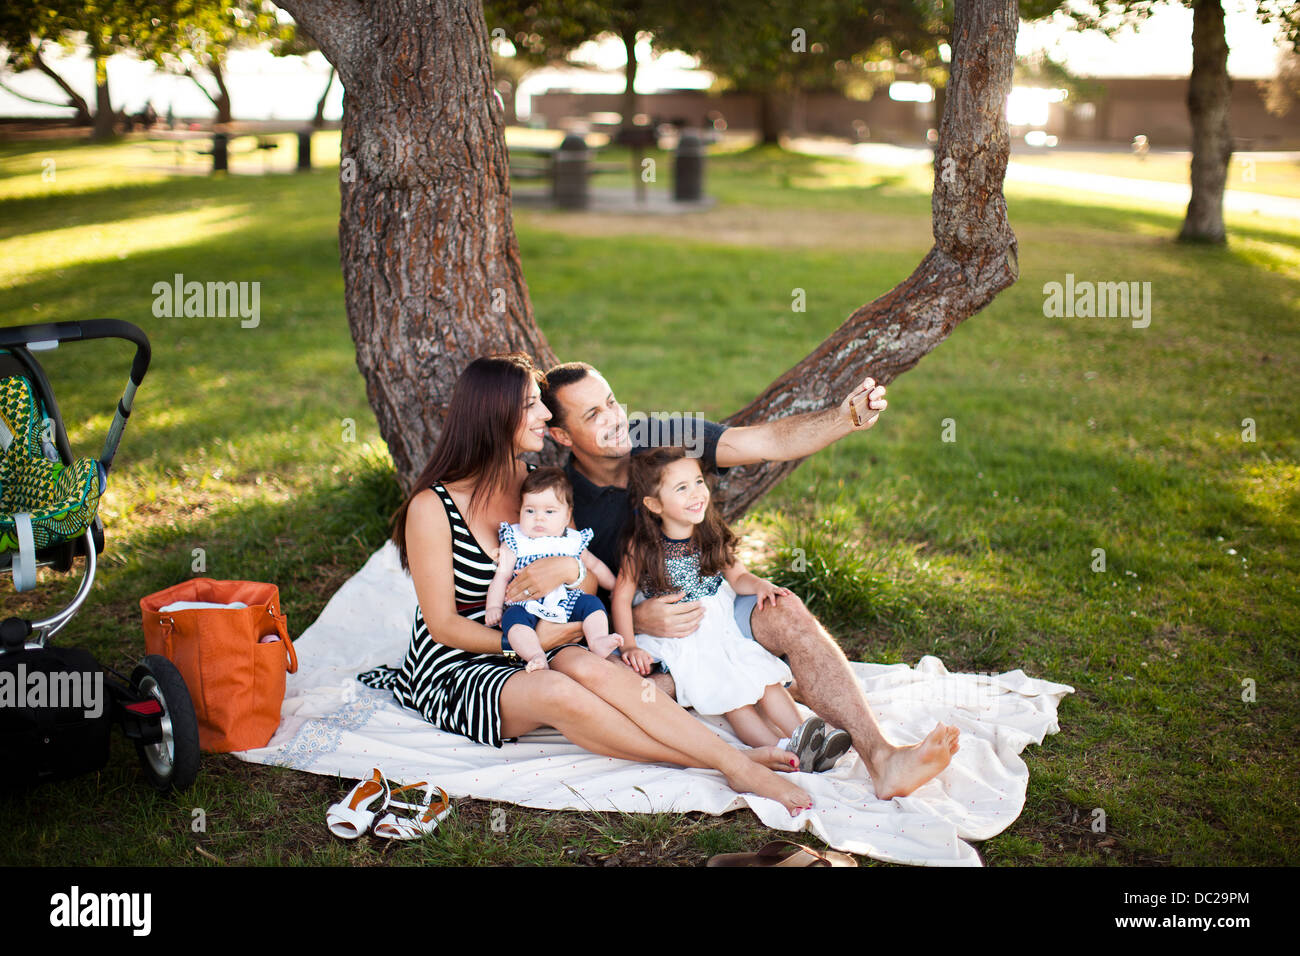 Famille avec deux enfants assis on picnic blanket Photo Stock